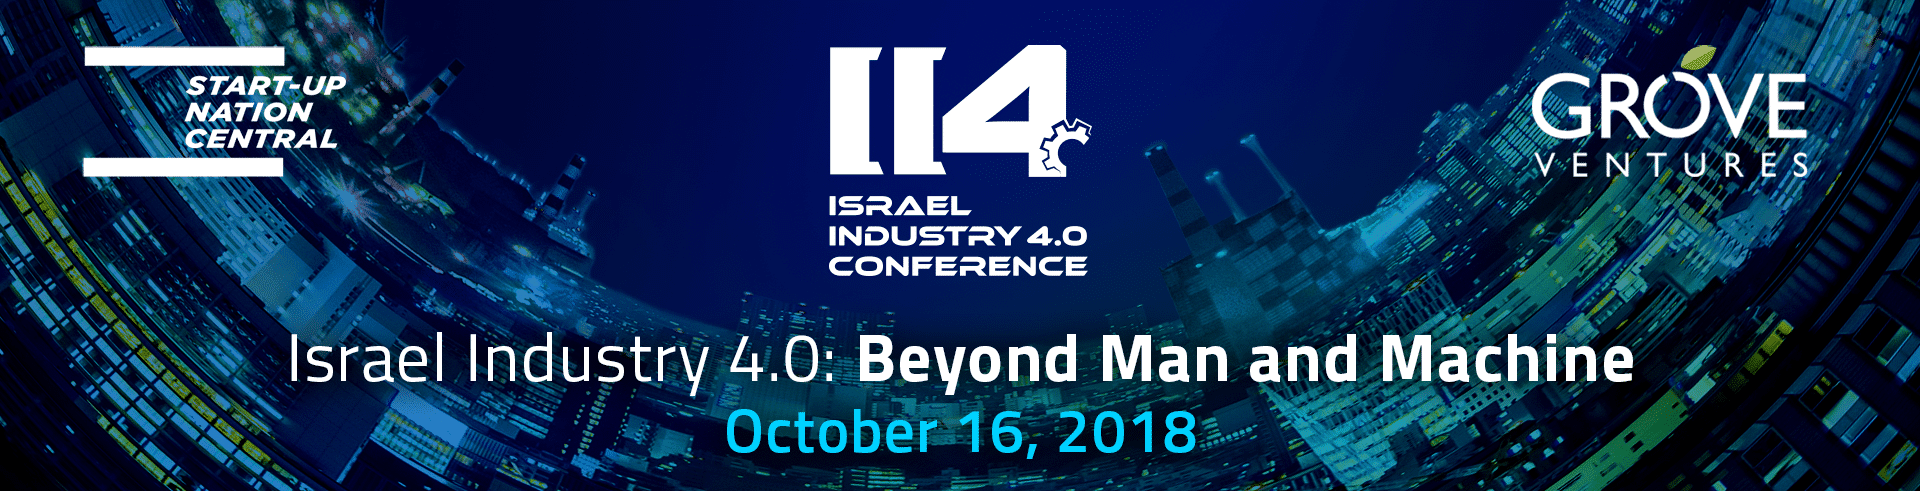 Israel Industry 4 Conference 2018